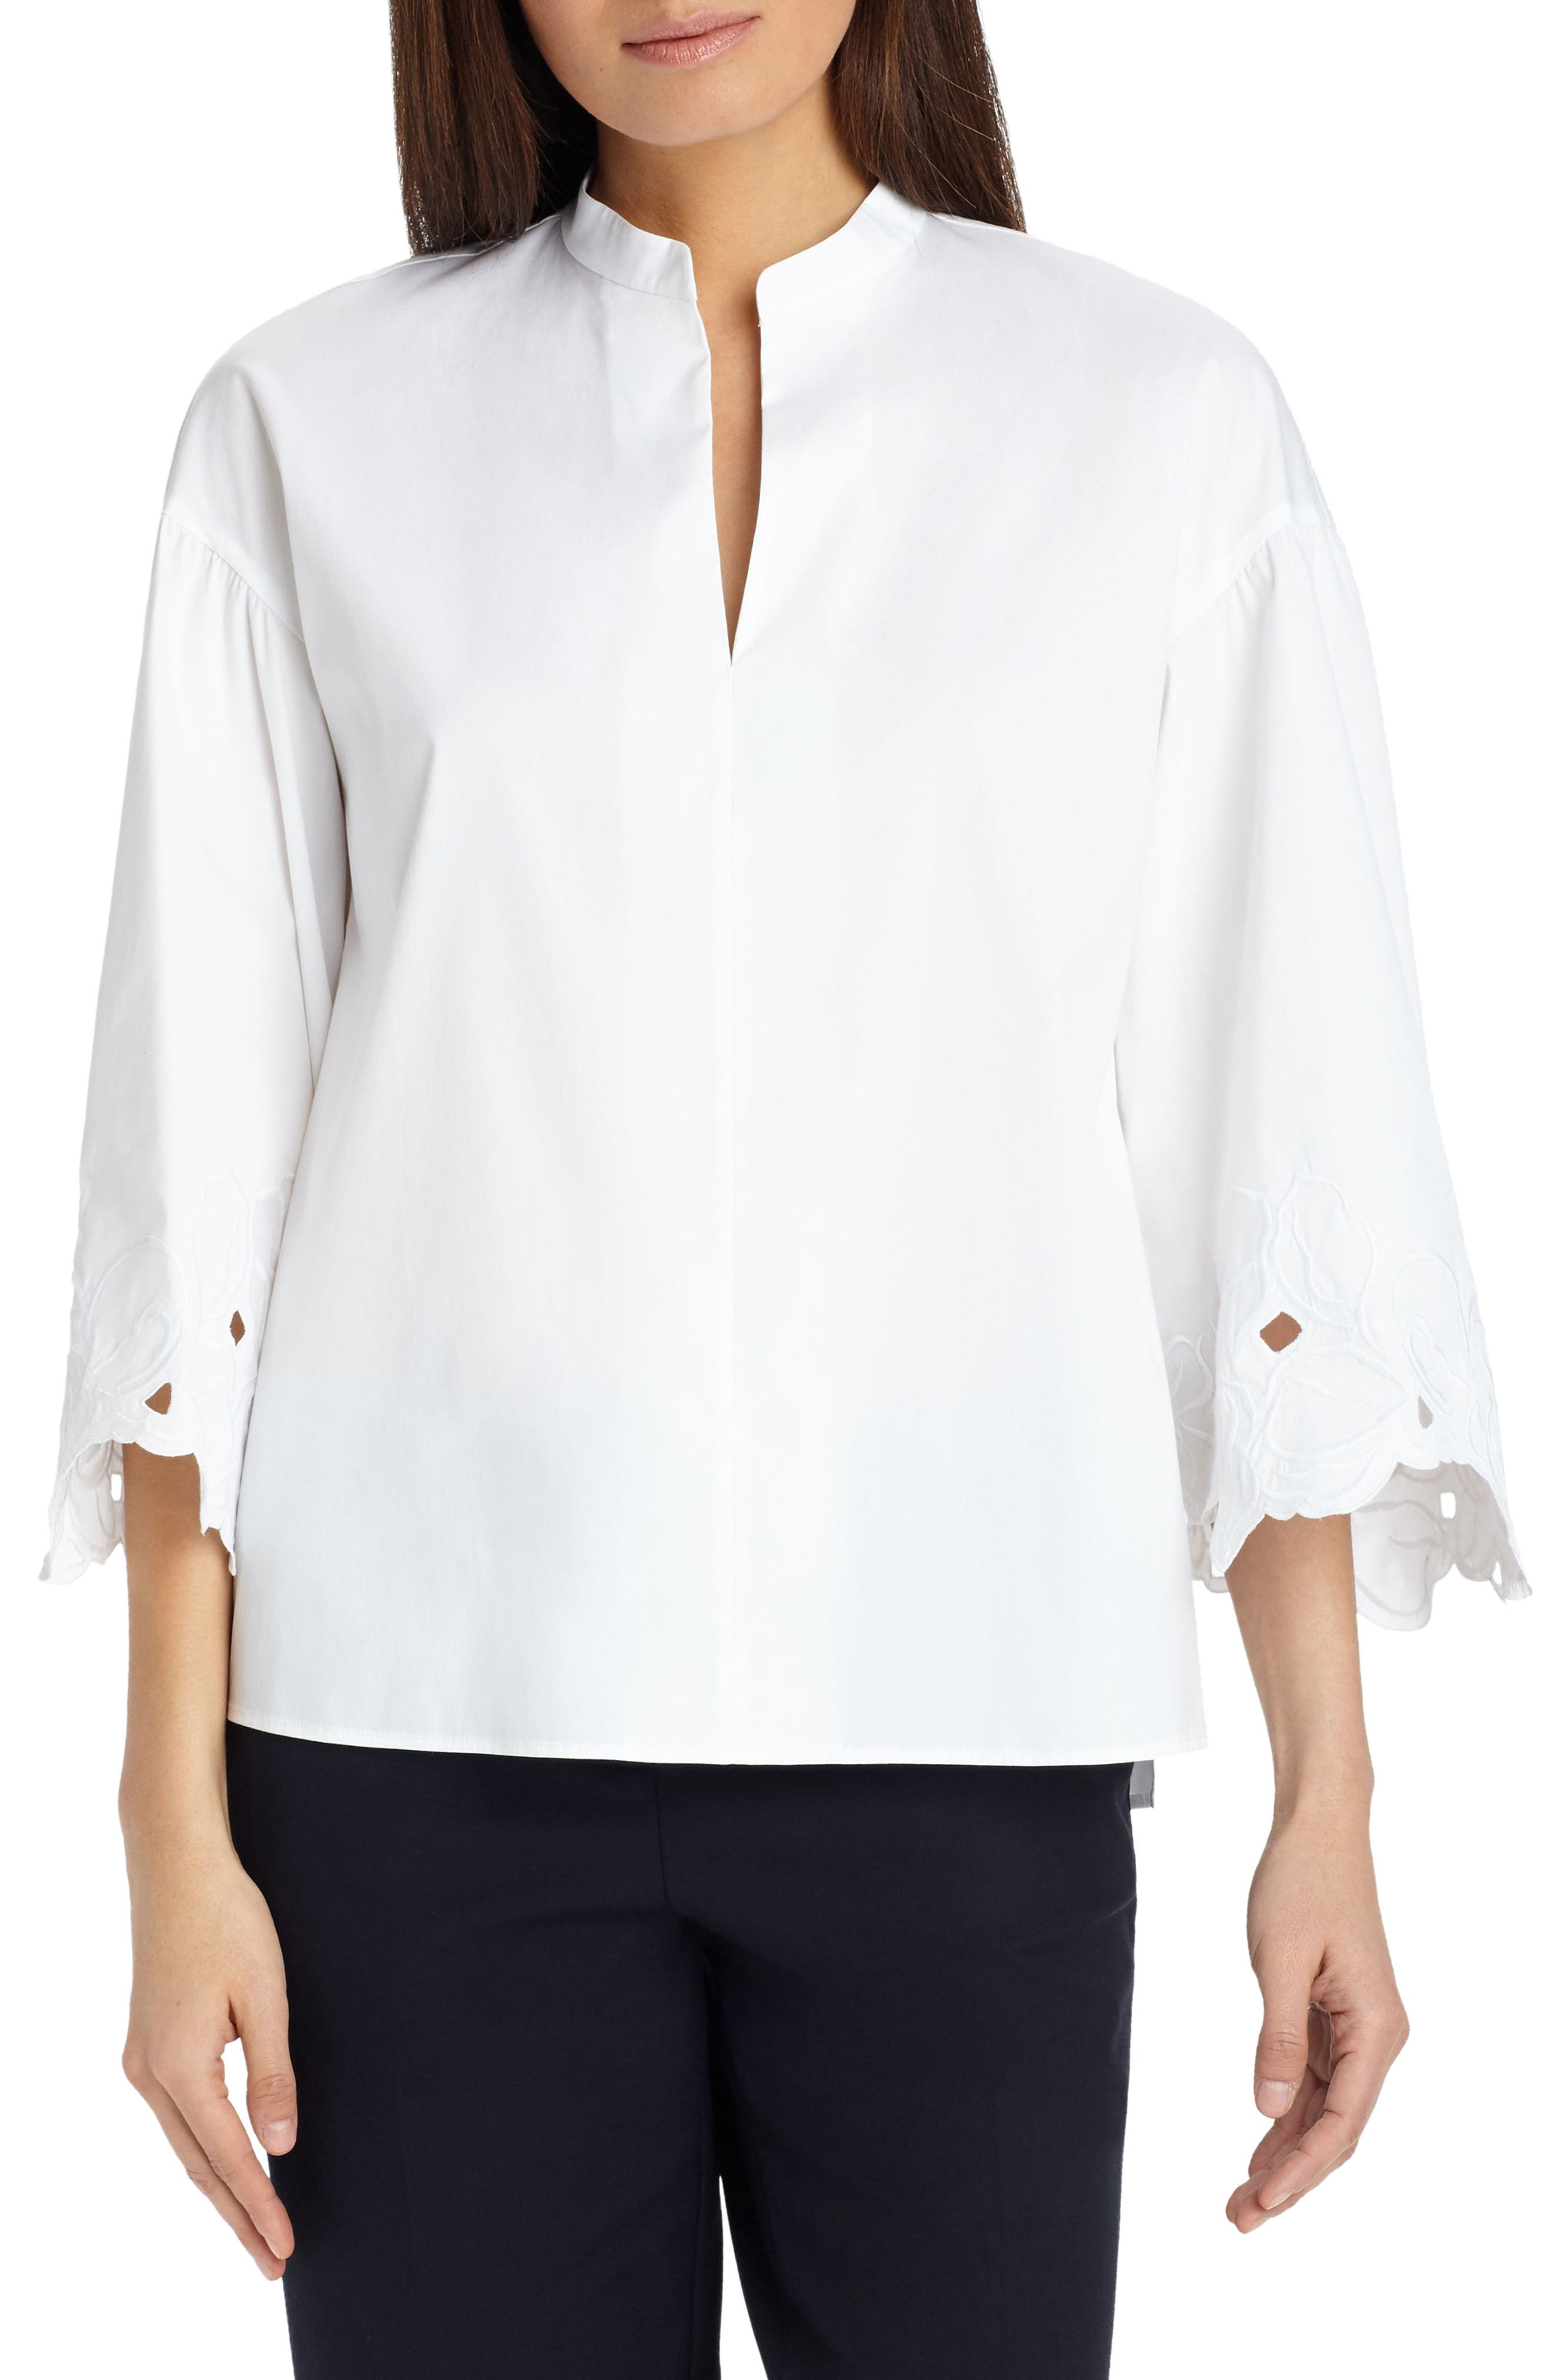 Carla Embroidered Blouse,                             Main thumbnail 1, color,                             White